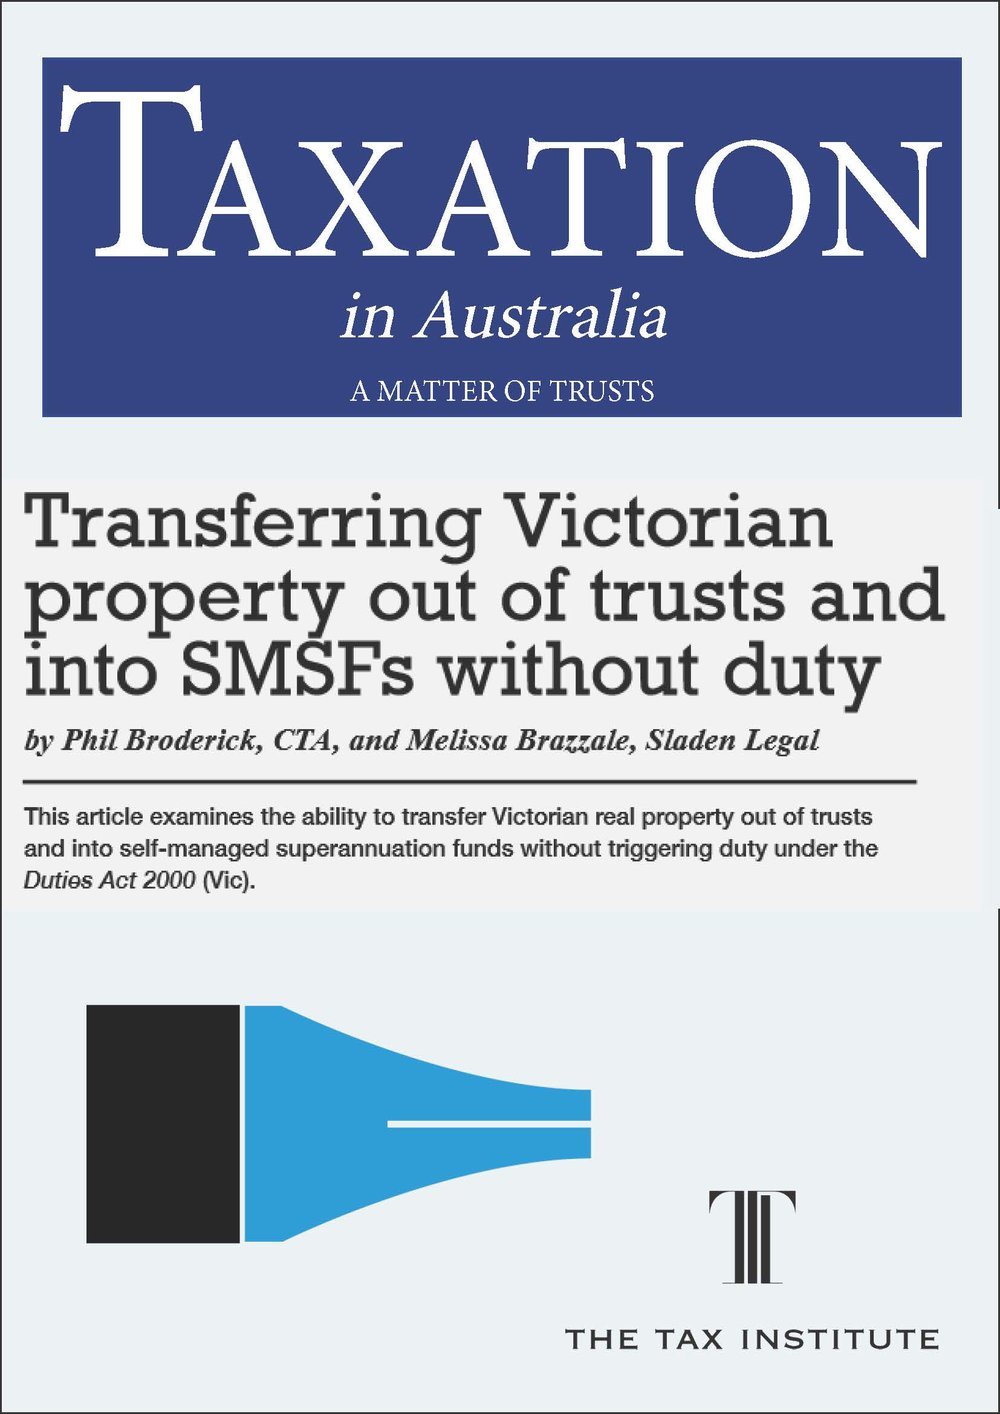 Transferring Victorian property out of trusts and into SMSFs without duty 14 May 2015